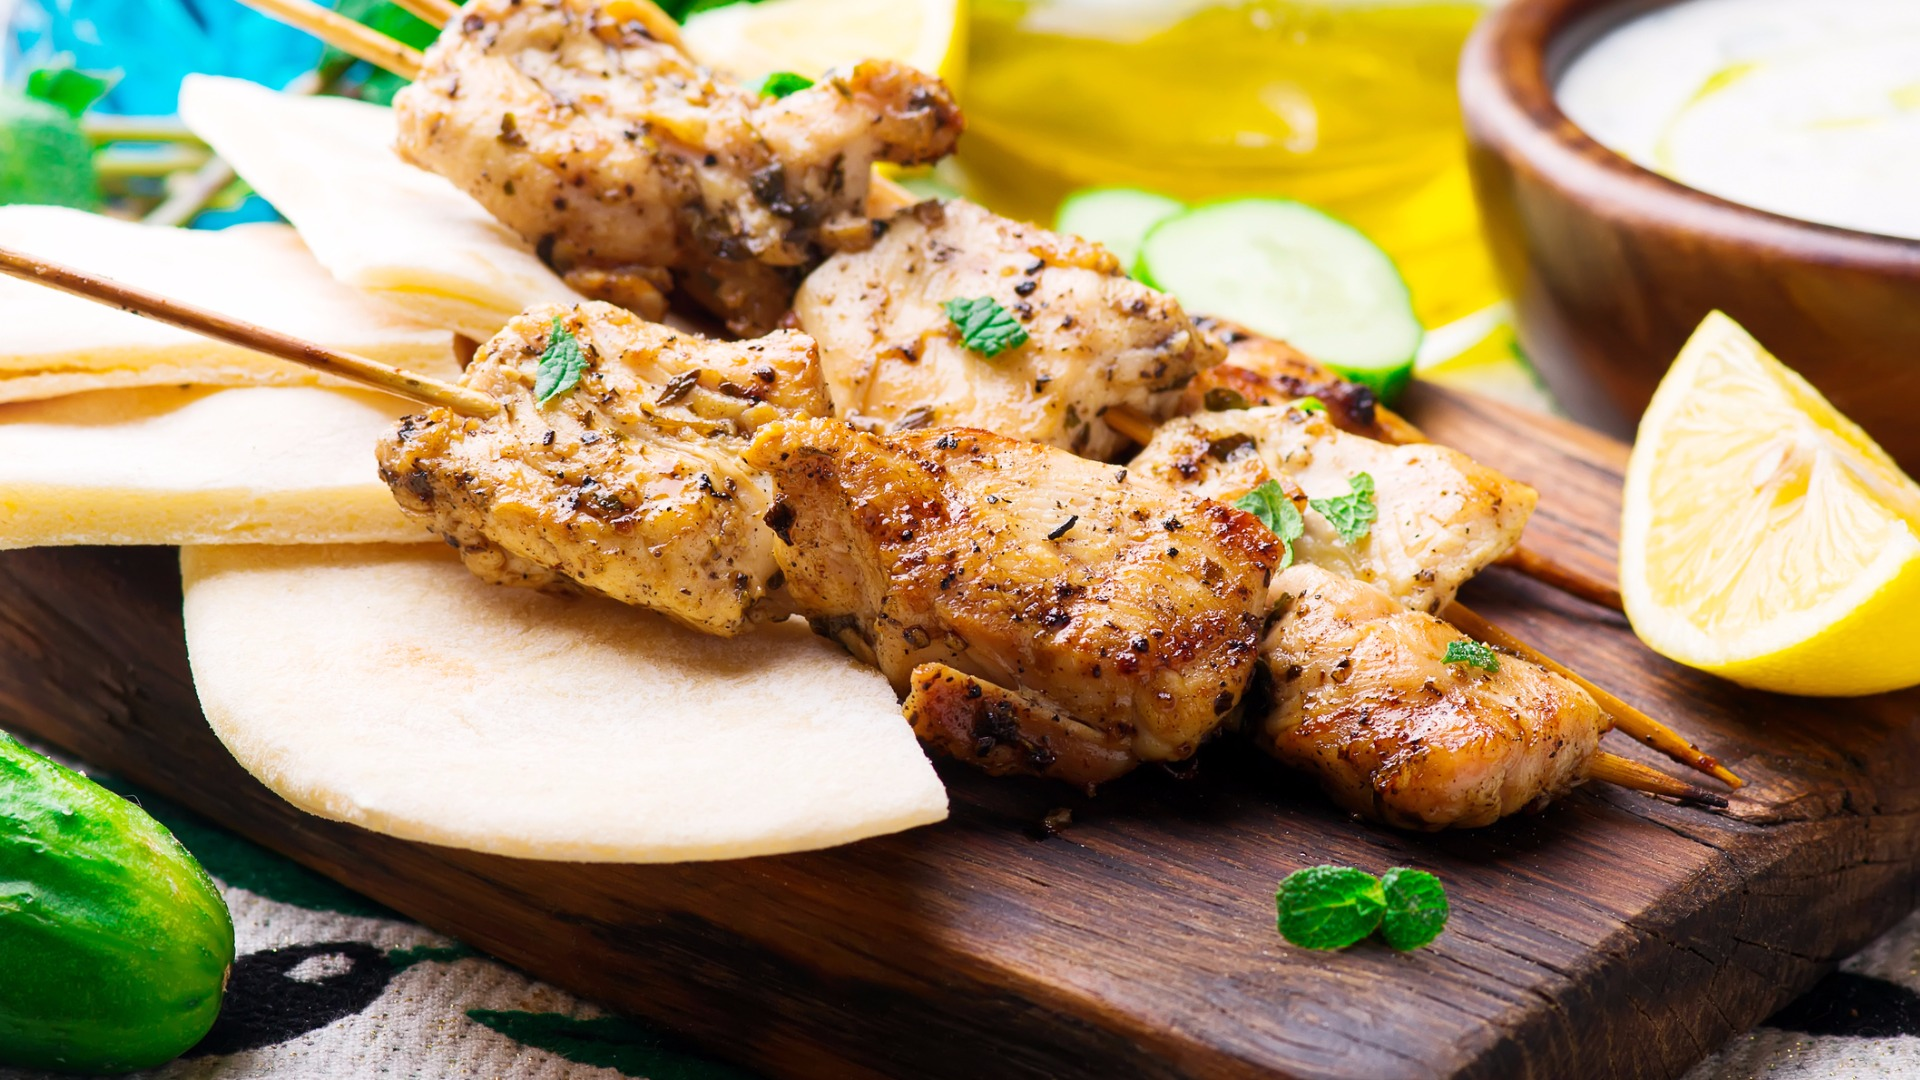 Chicken souvlaki on a cutting board with lemon and dip